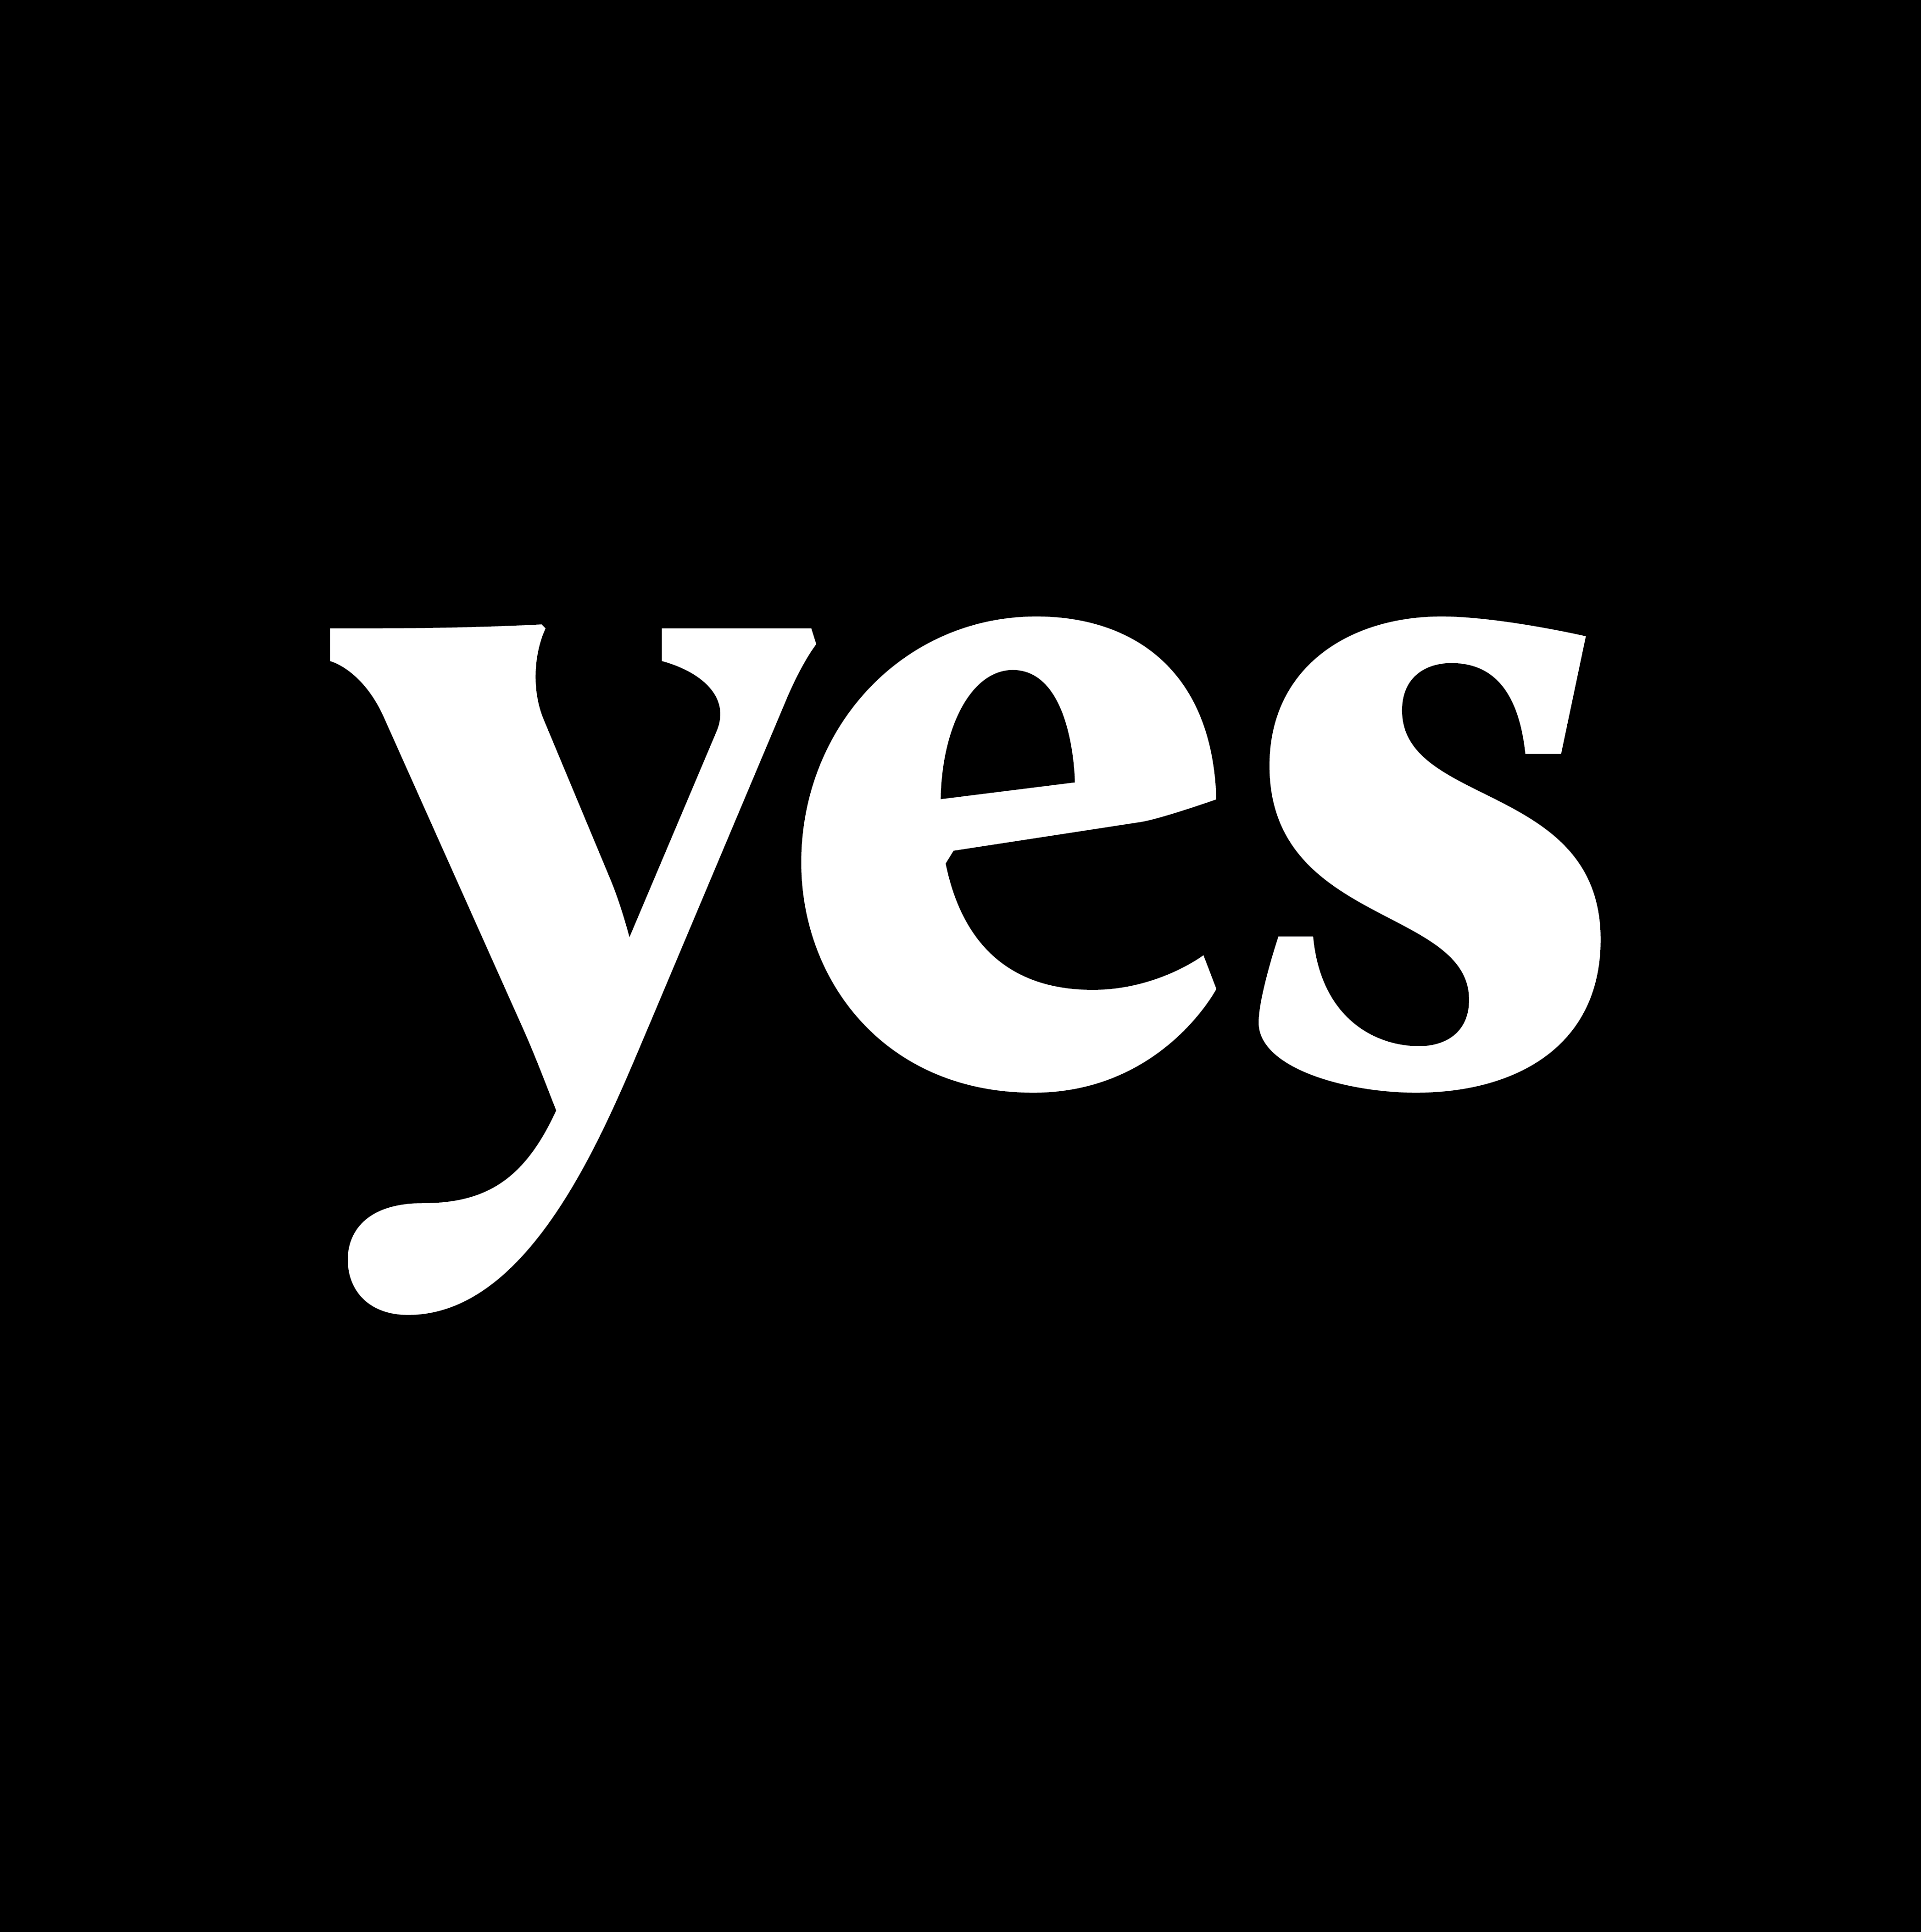 Images of Yes | 4187x4212